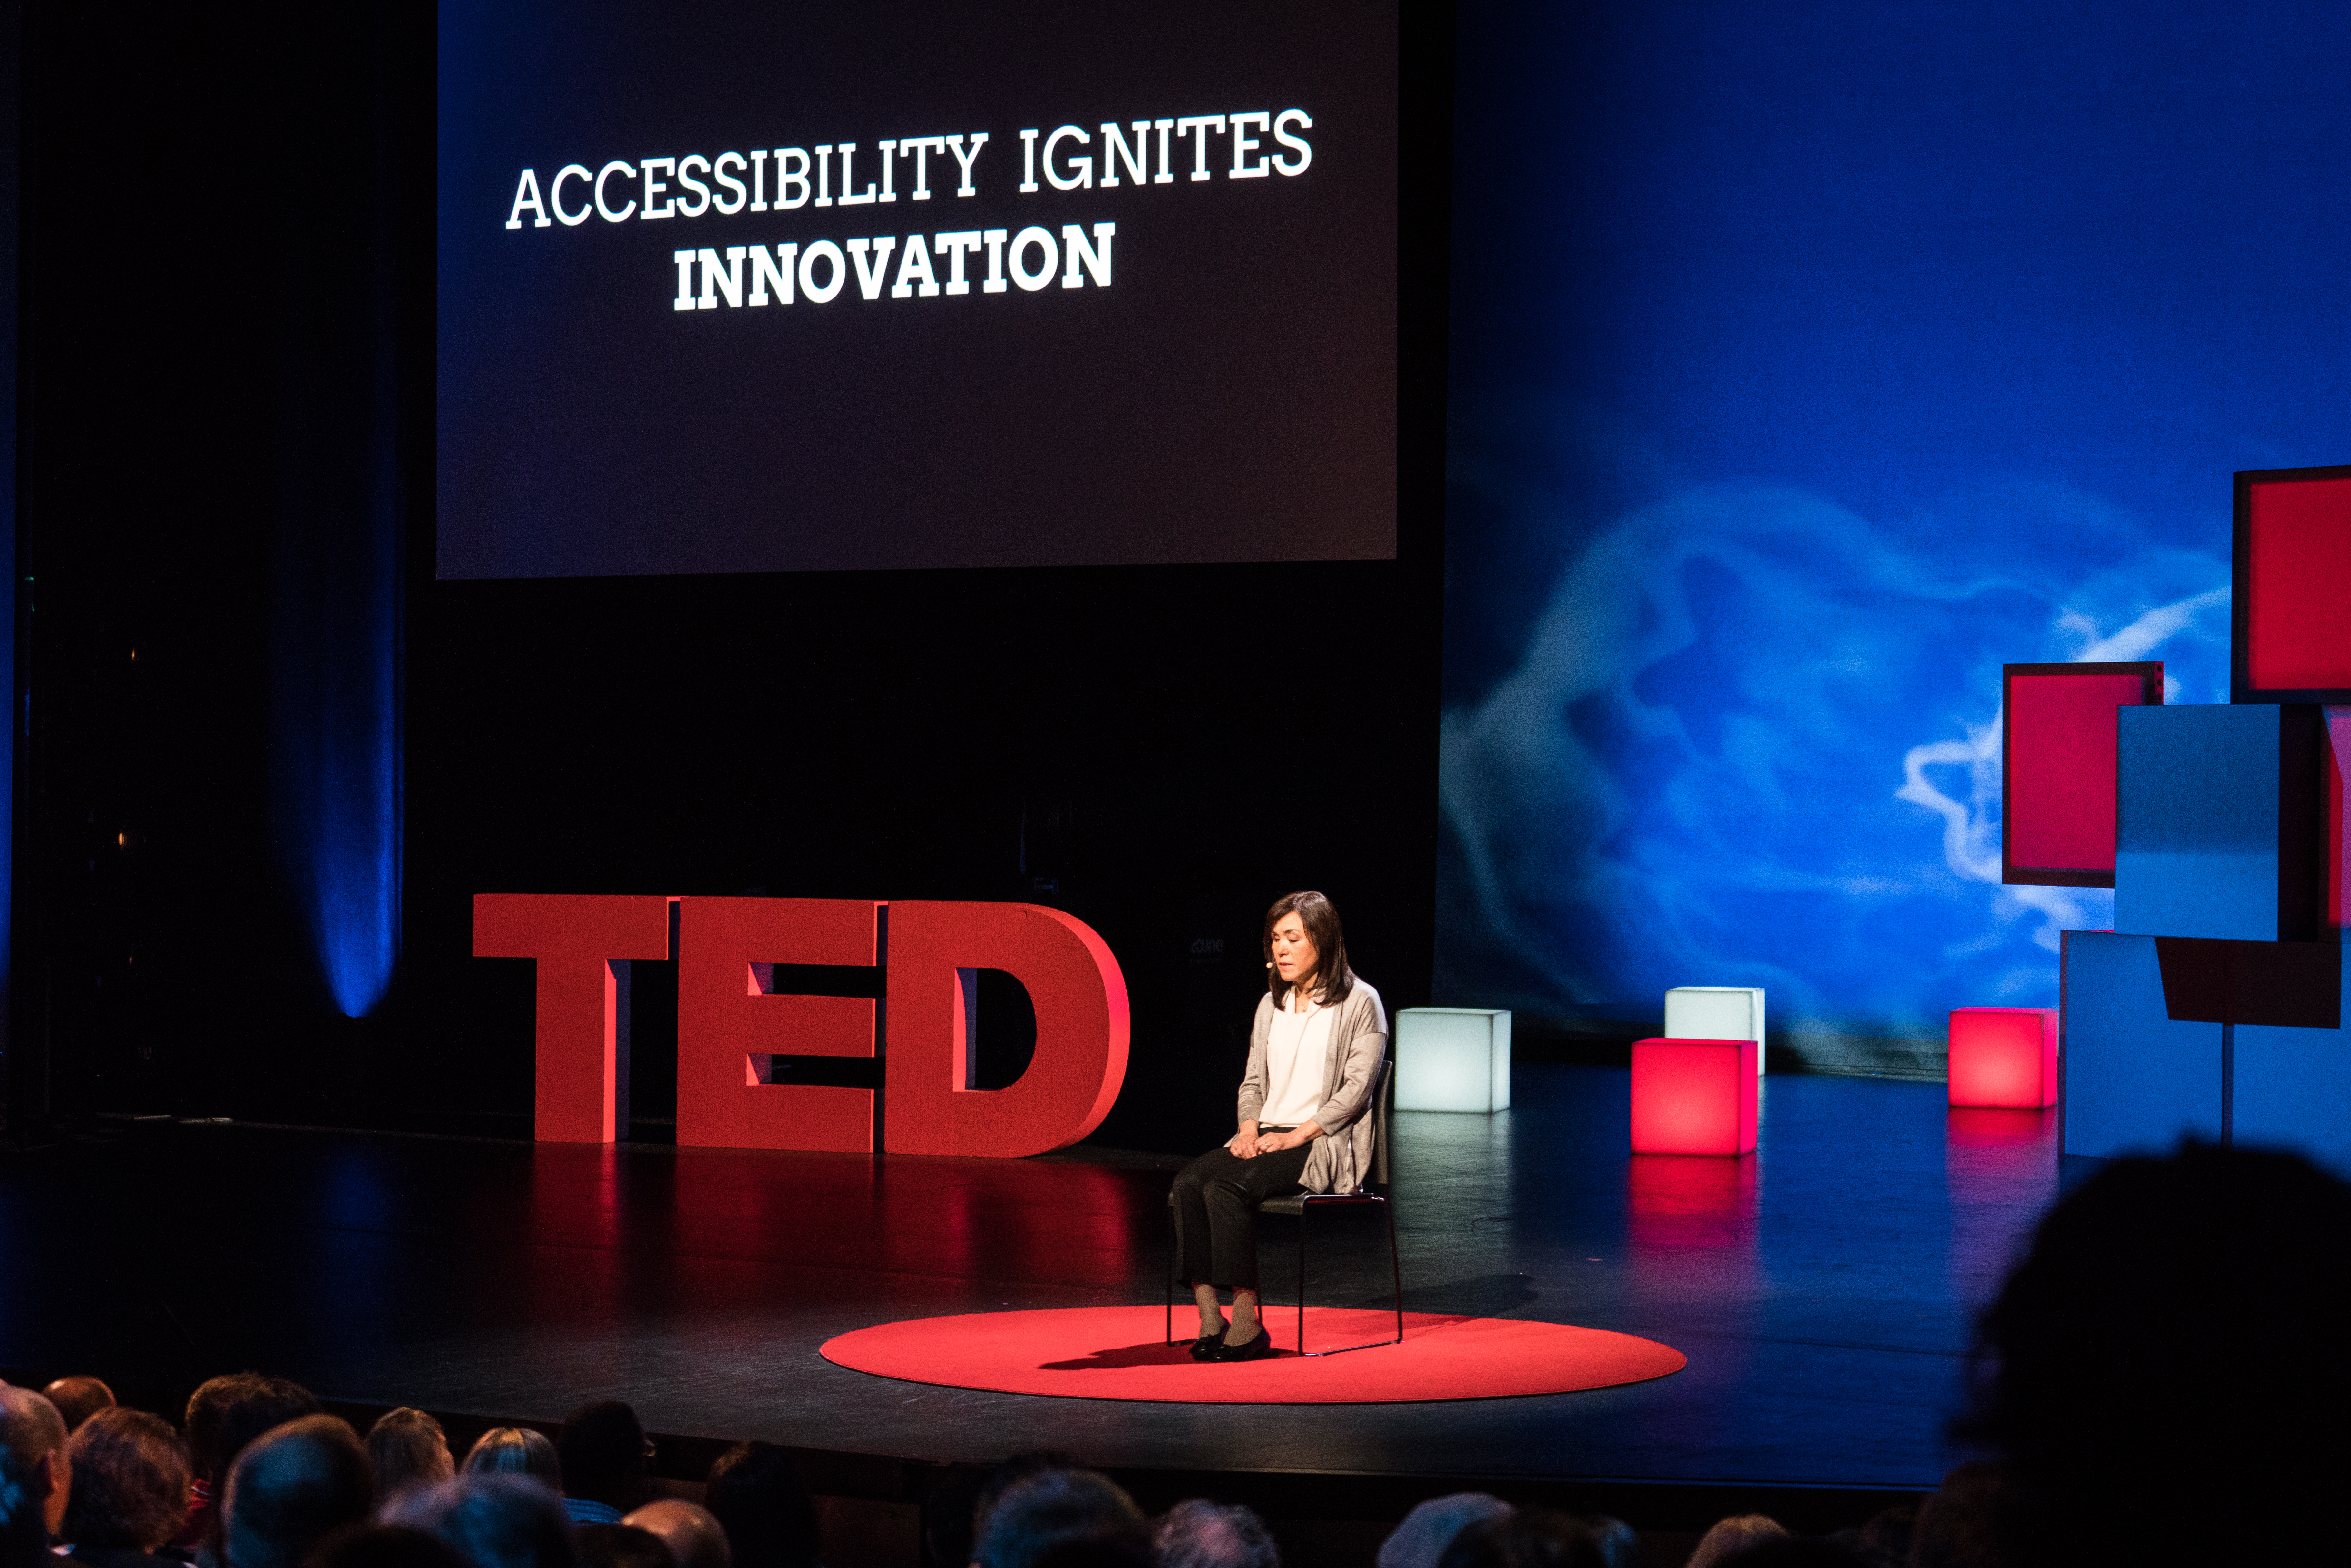 Chieko Asakawa lost her sight at age 14. She has spent her career coming up with technology to increase independence for herself and others. She pioneered digital Braille and voice browsers. Photo: Russell Edwards/TED